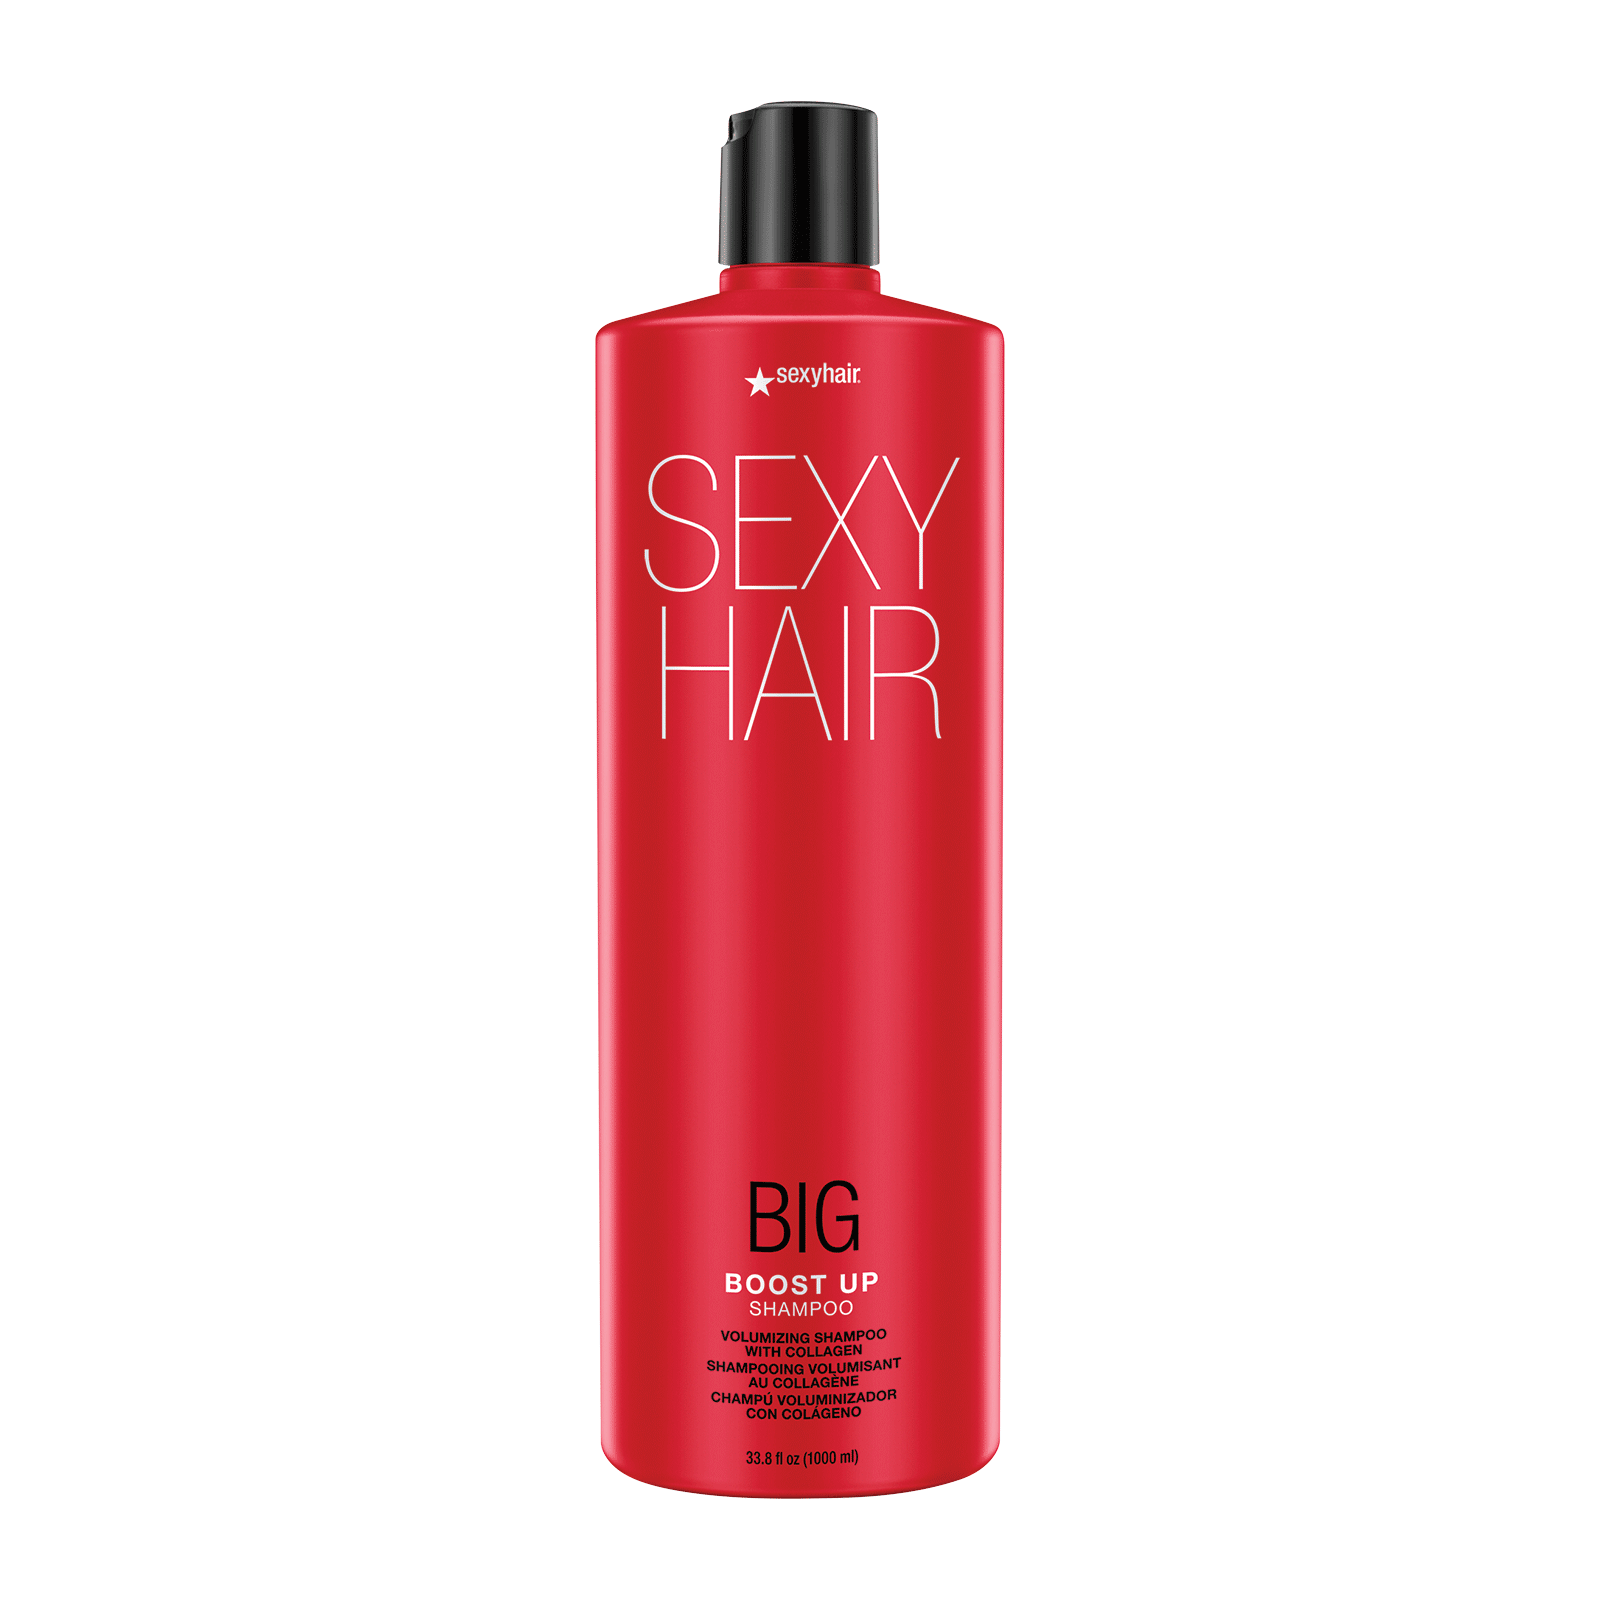 Primary image for Sexy Hair Concepts Big Boost Up Volumizing Shampoo with Collagen 33.8oz